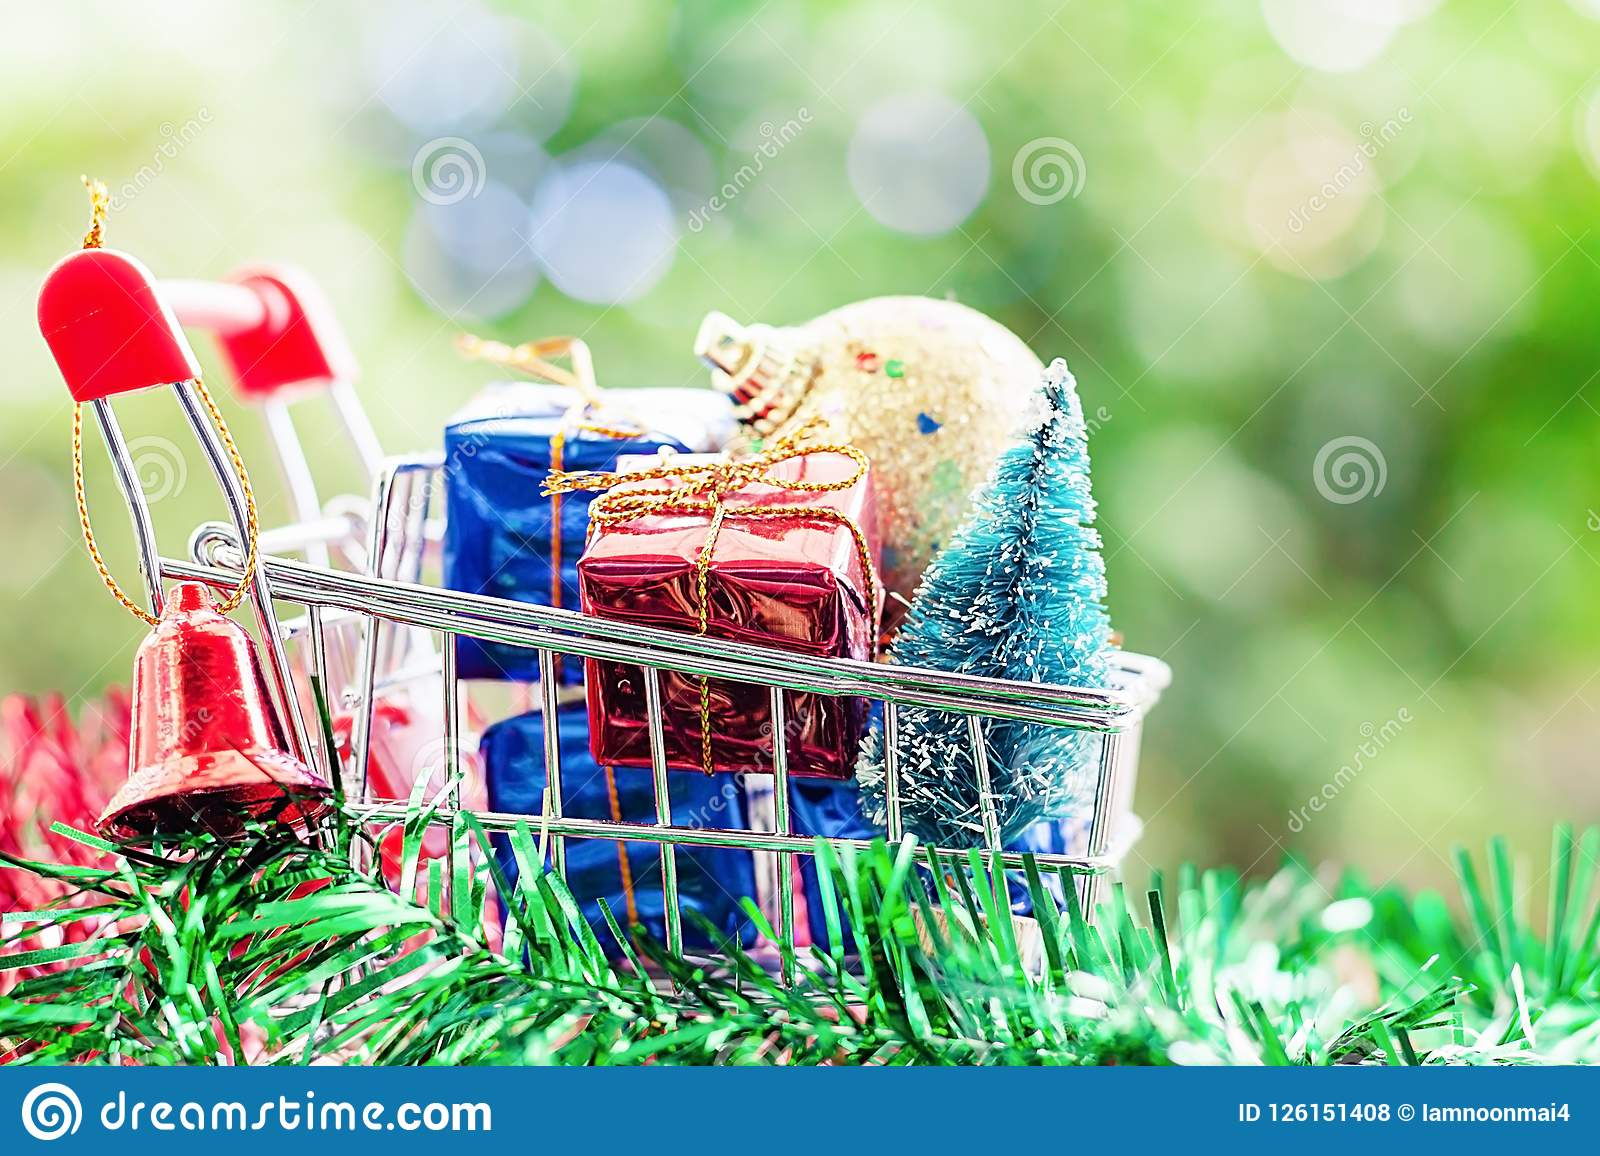 Full of Xmas decorative items in mini shopping cart or trolley a